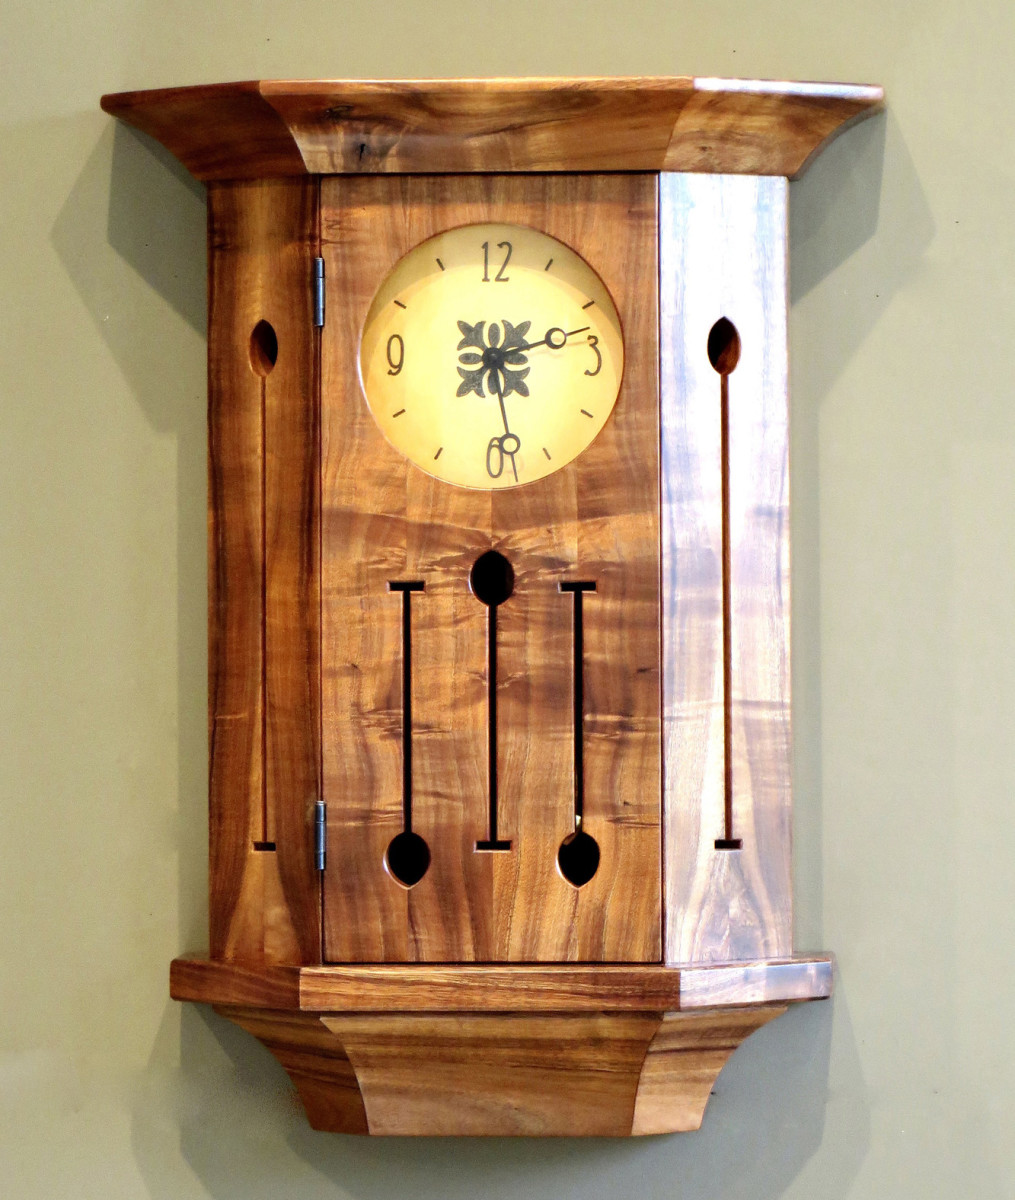 A recent custom clock was crafted from a scarce Hawaiian wood, koa.